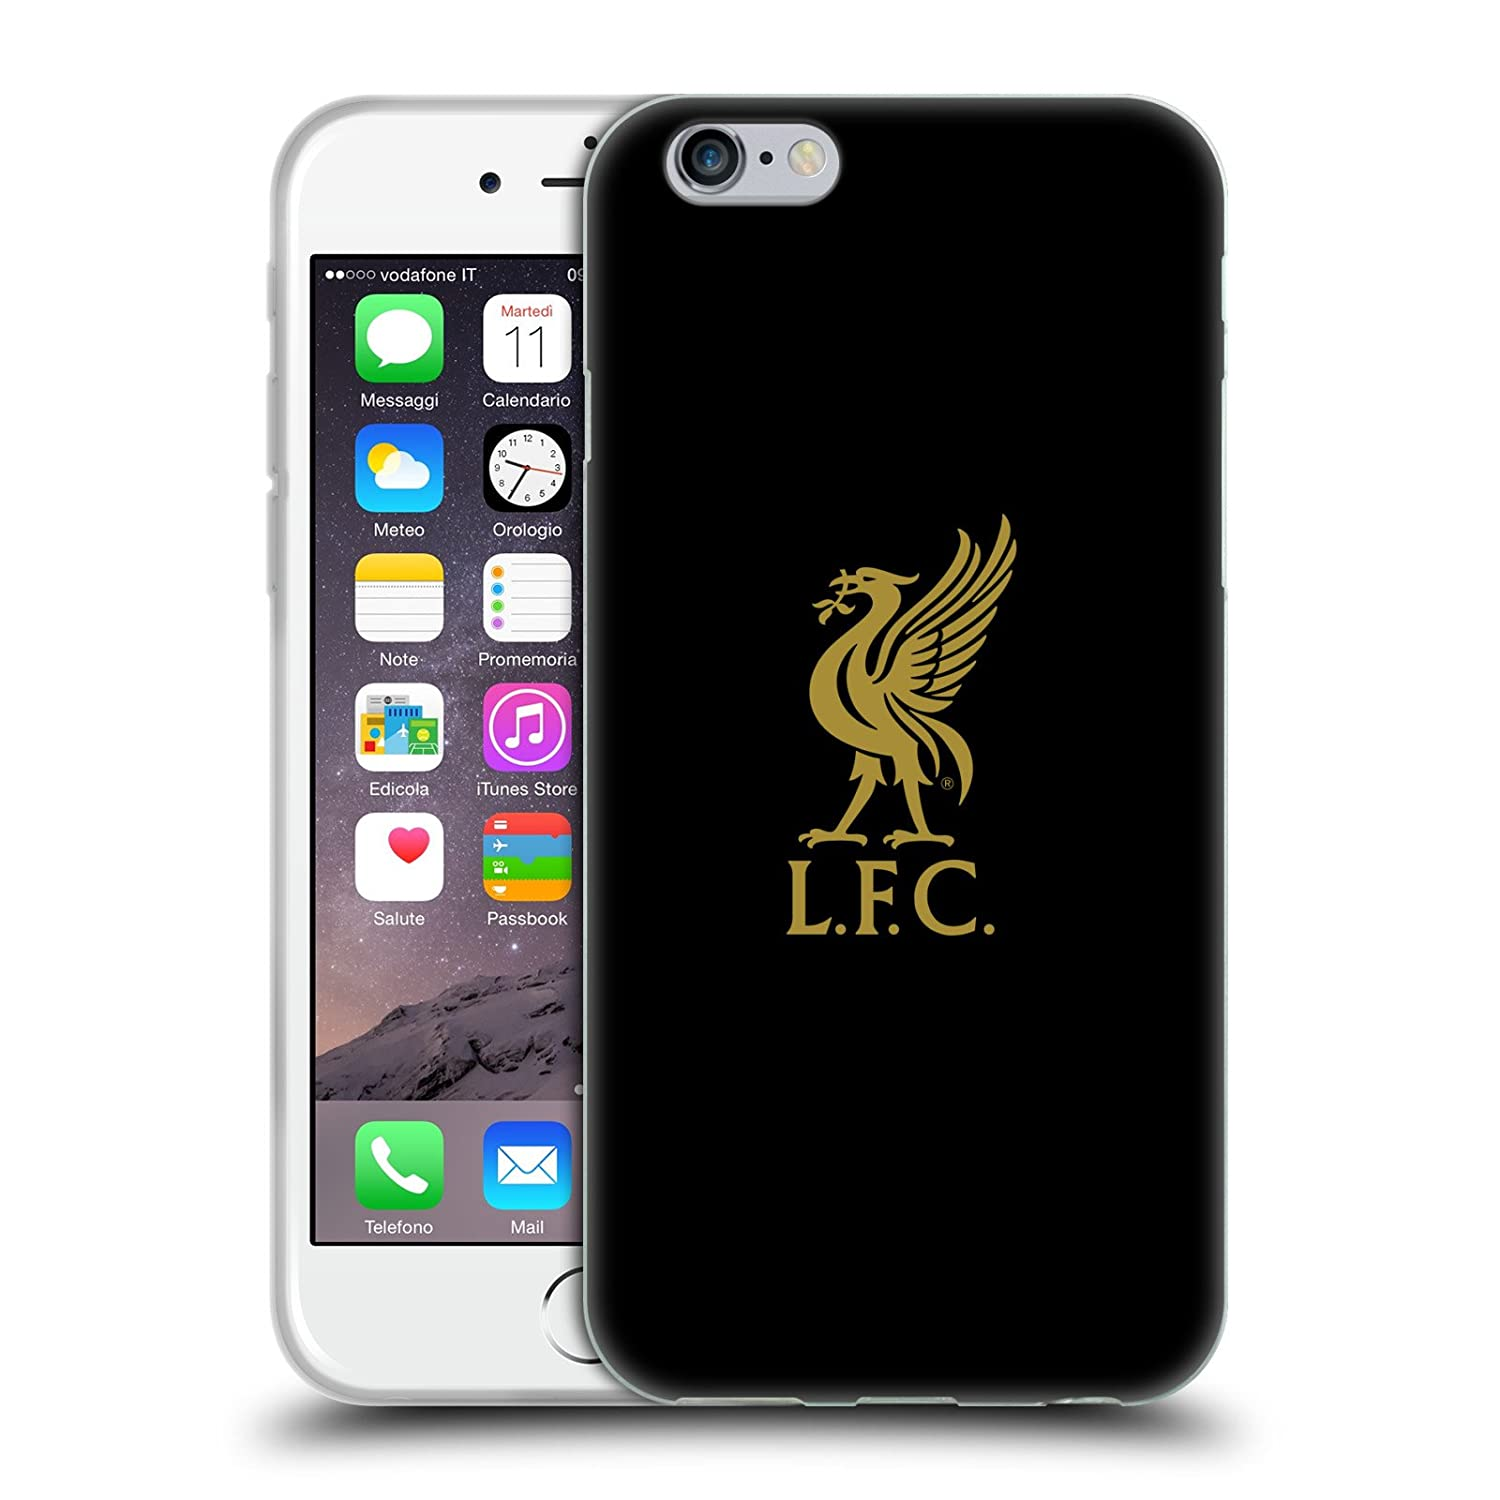 Liverpool Calendario.Official Liverpool Football Club Gold Logo On Black Liver Bird Soft Gel Case For Iphone 6 Iphone 6s